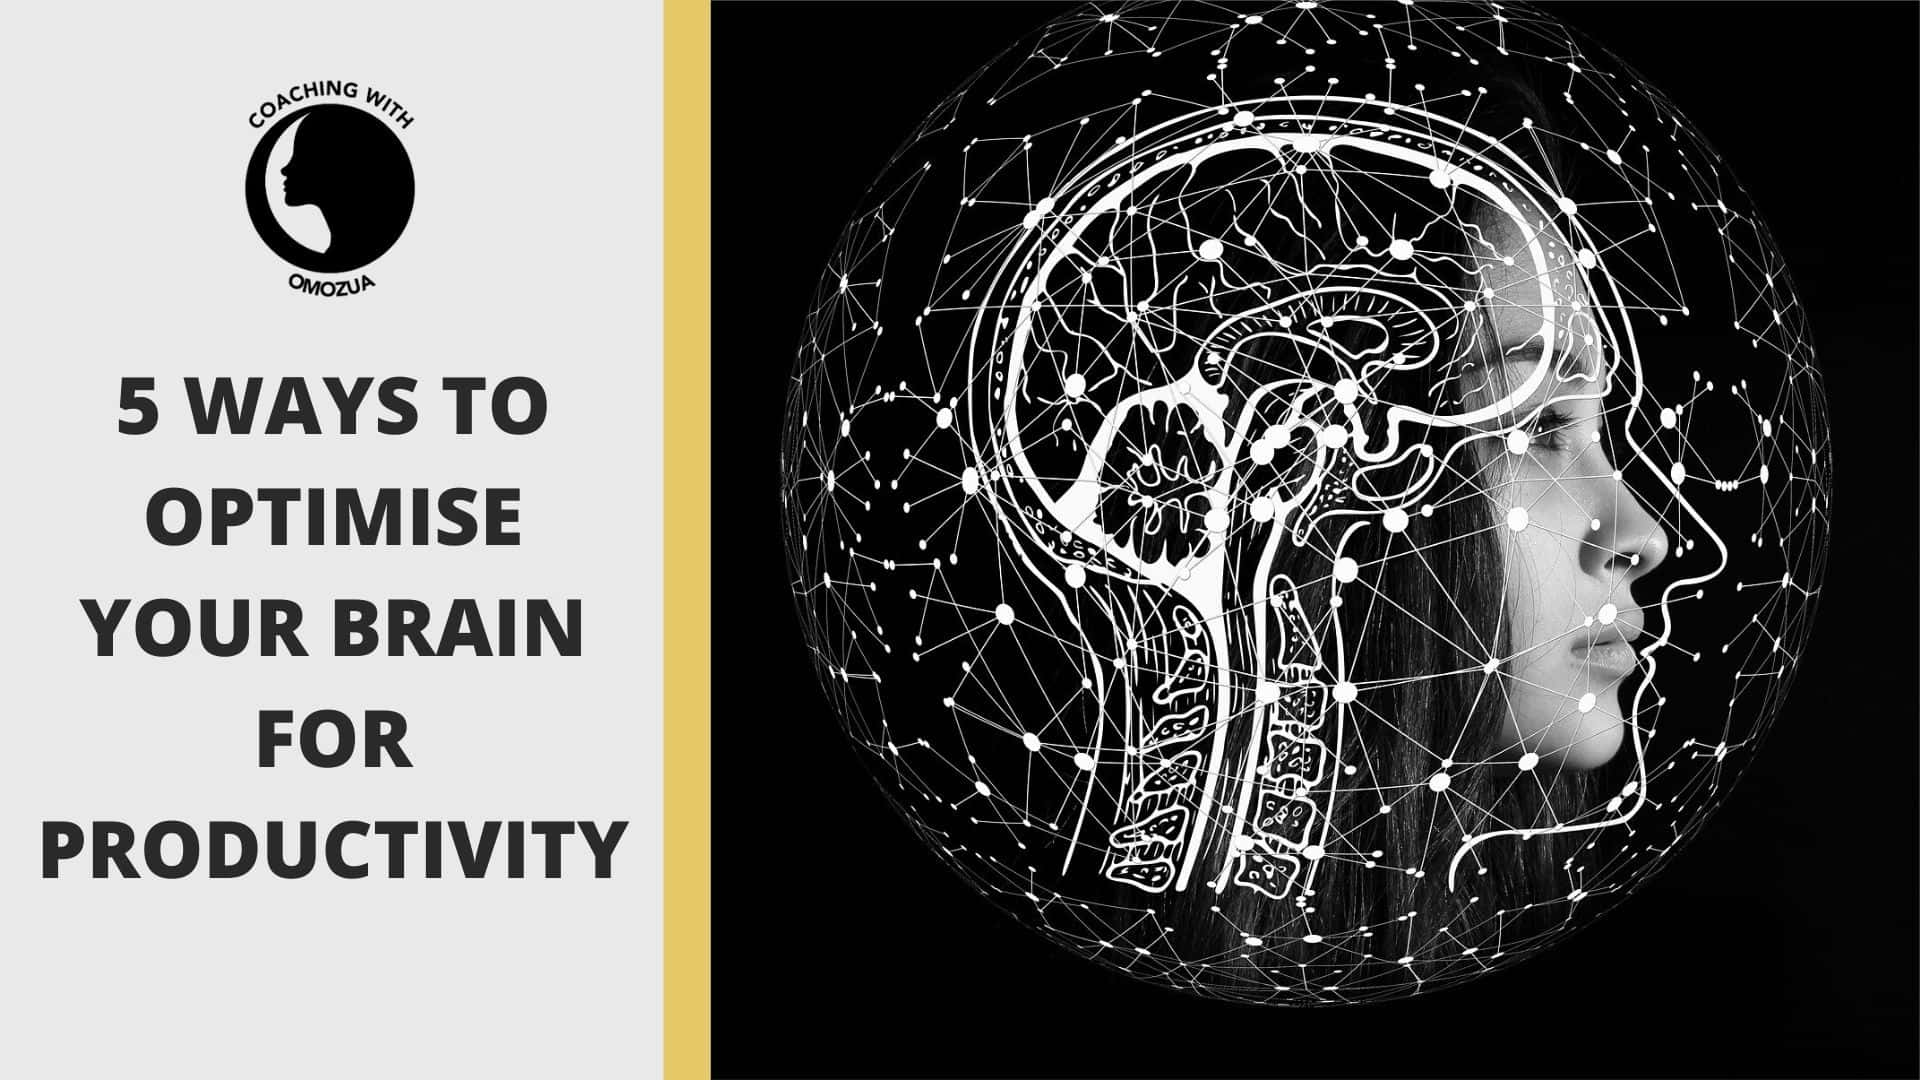 5 ways to optimise your brain for productivity